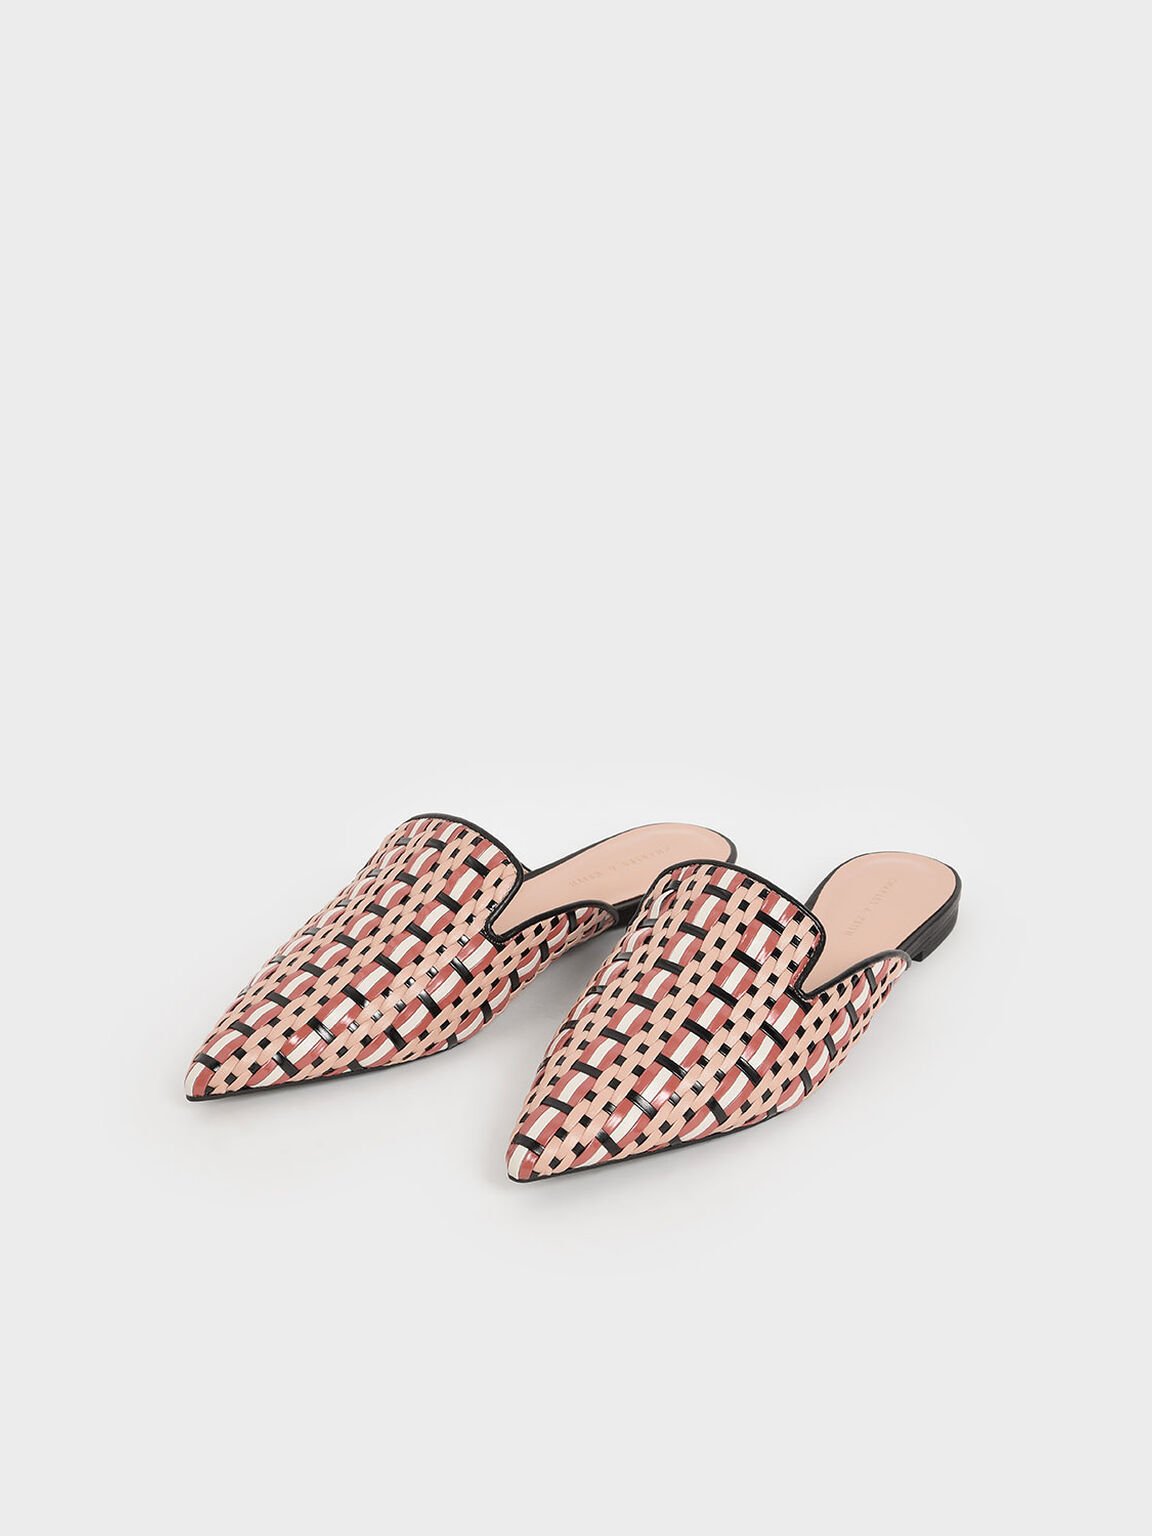 Multicoloured Woven Mules, Multi, hi-res